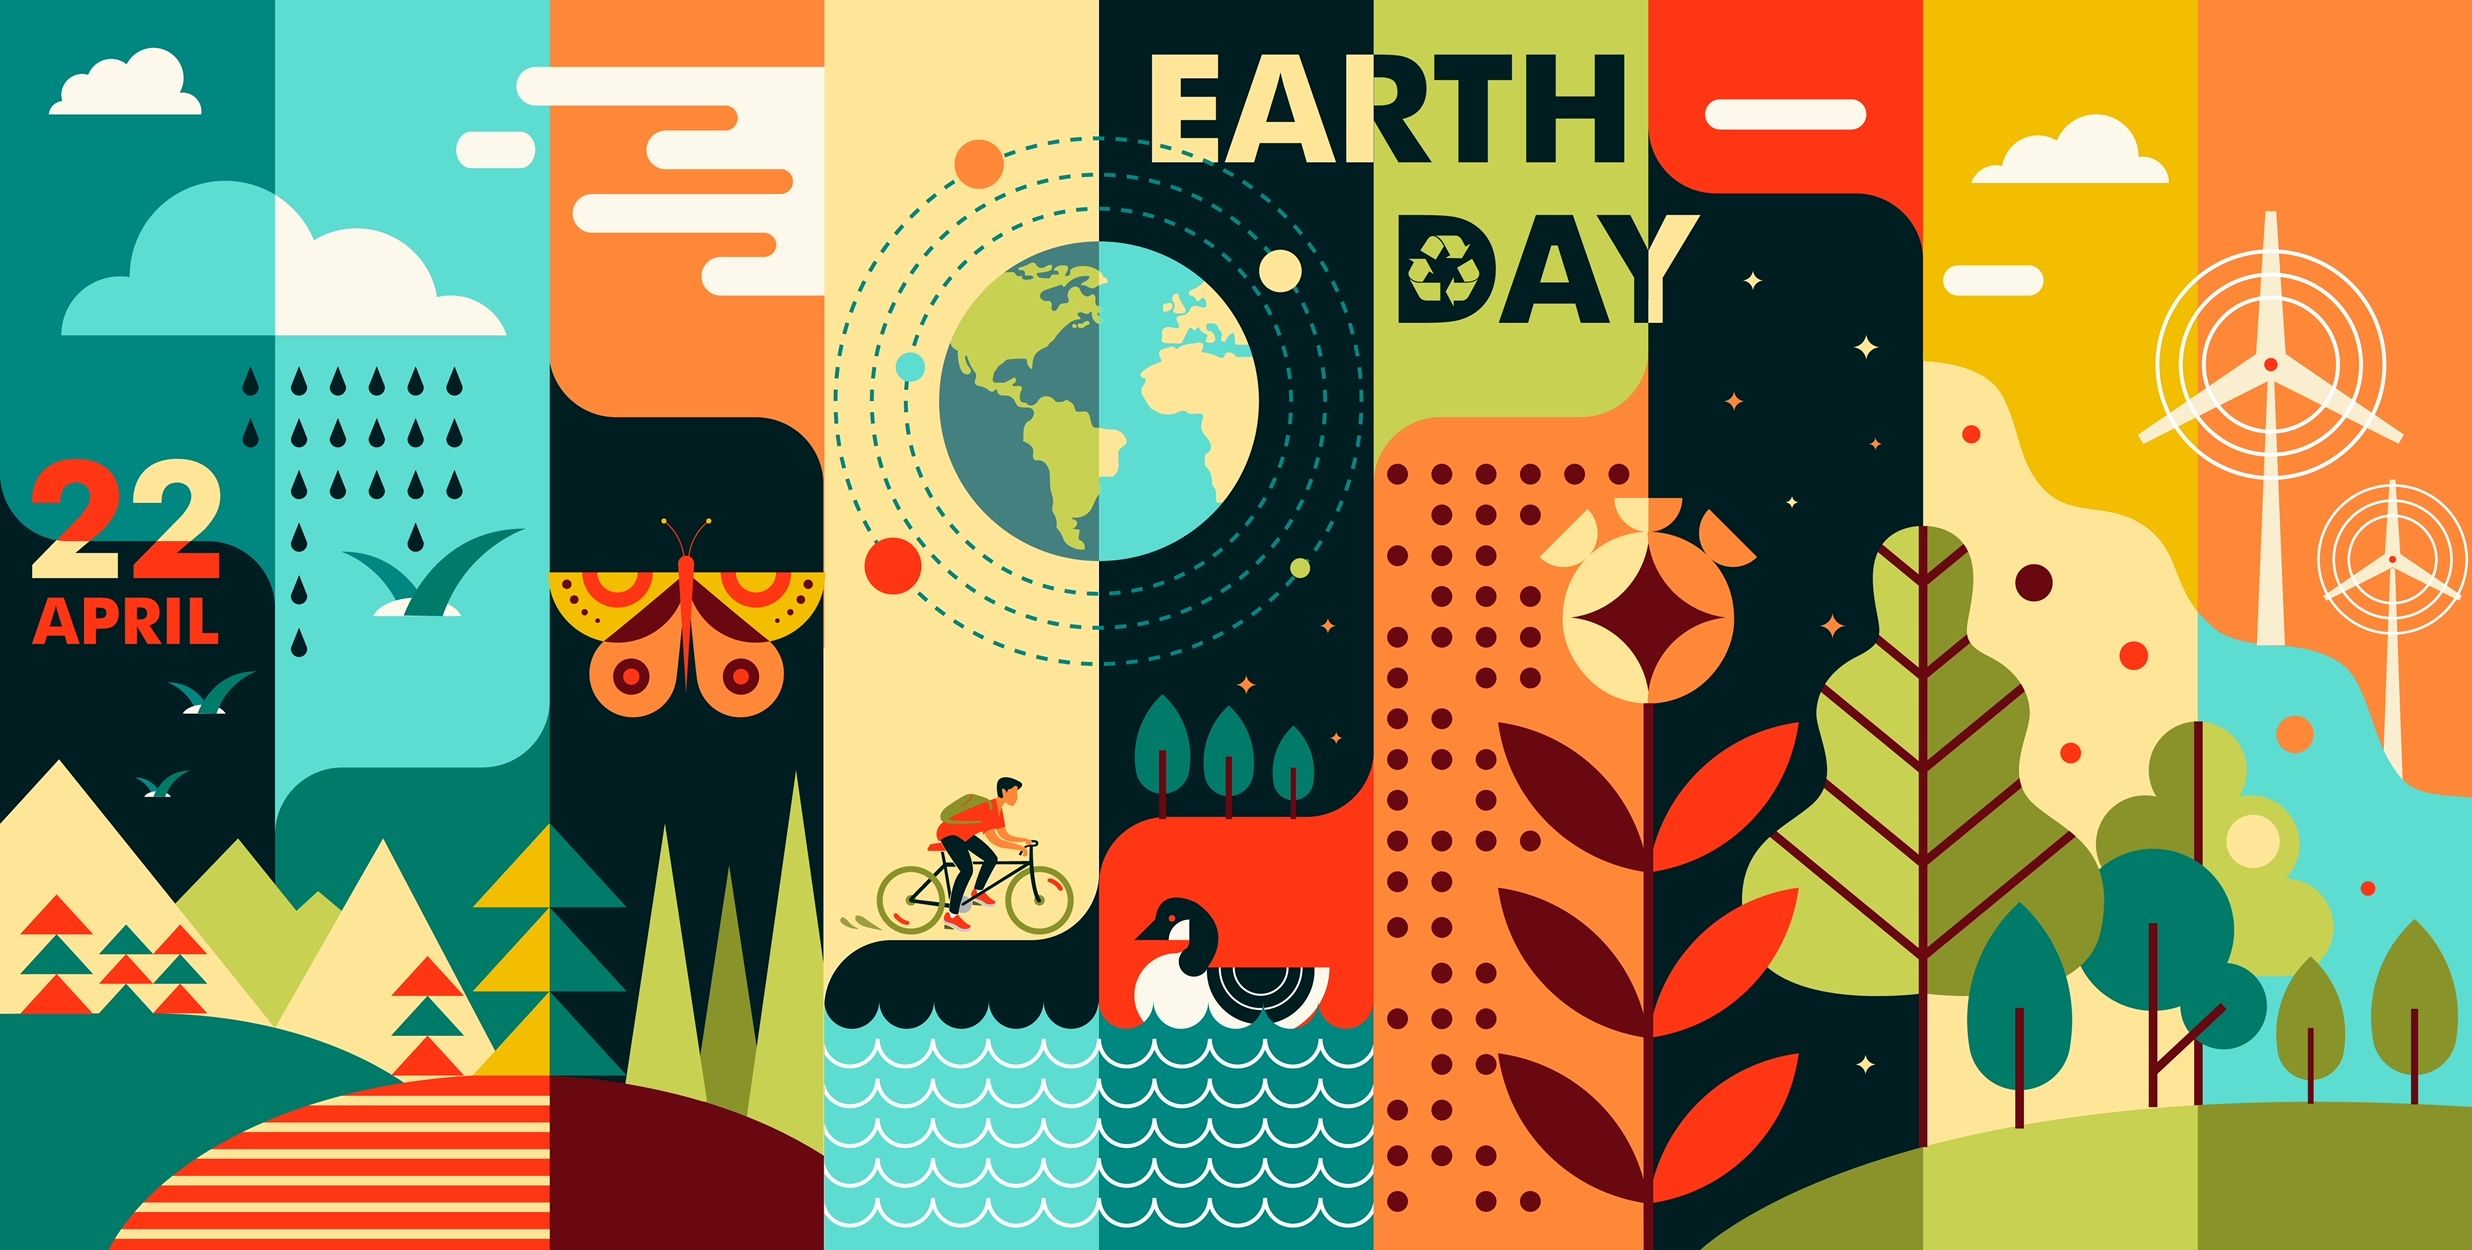 Earth Day 2021: 5 ways you can help to restore our earth - Glass